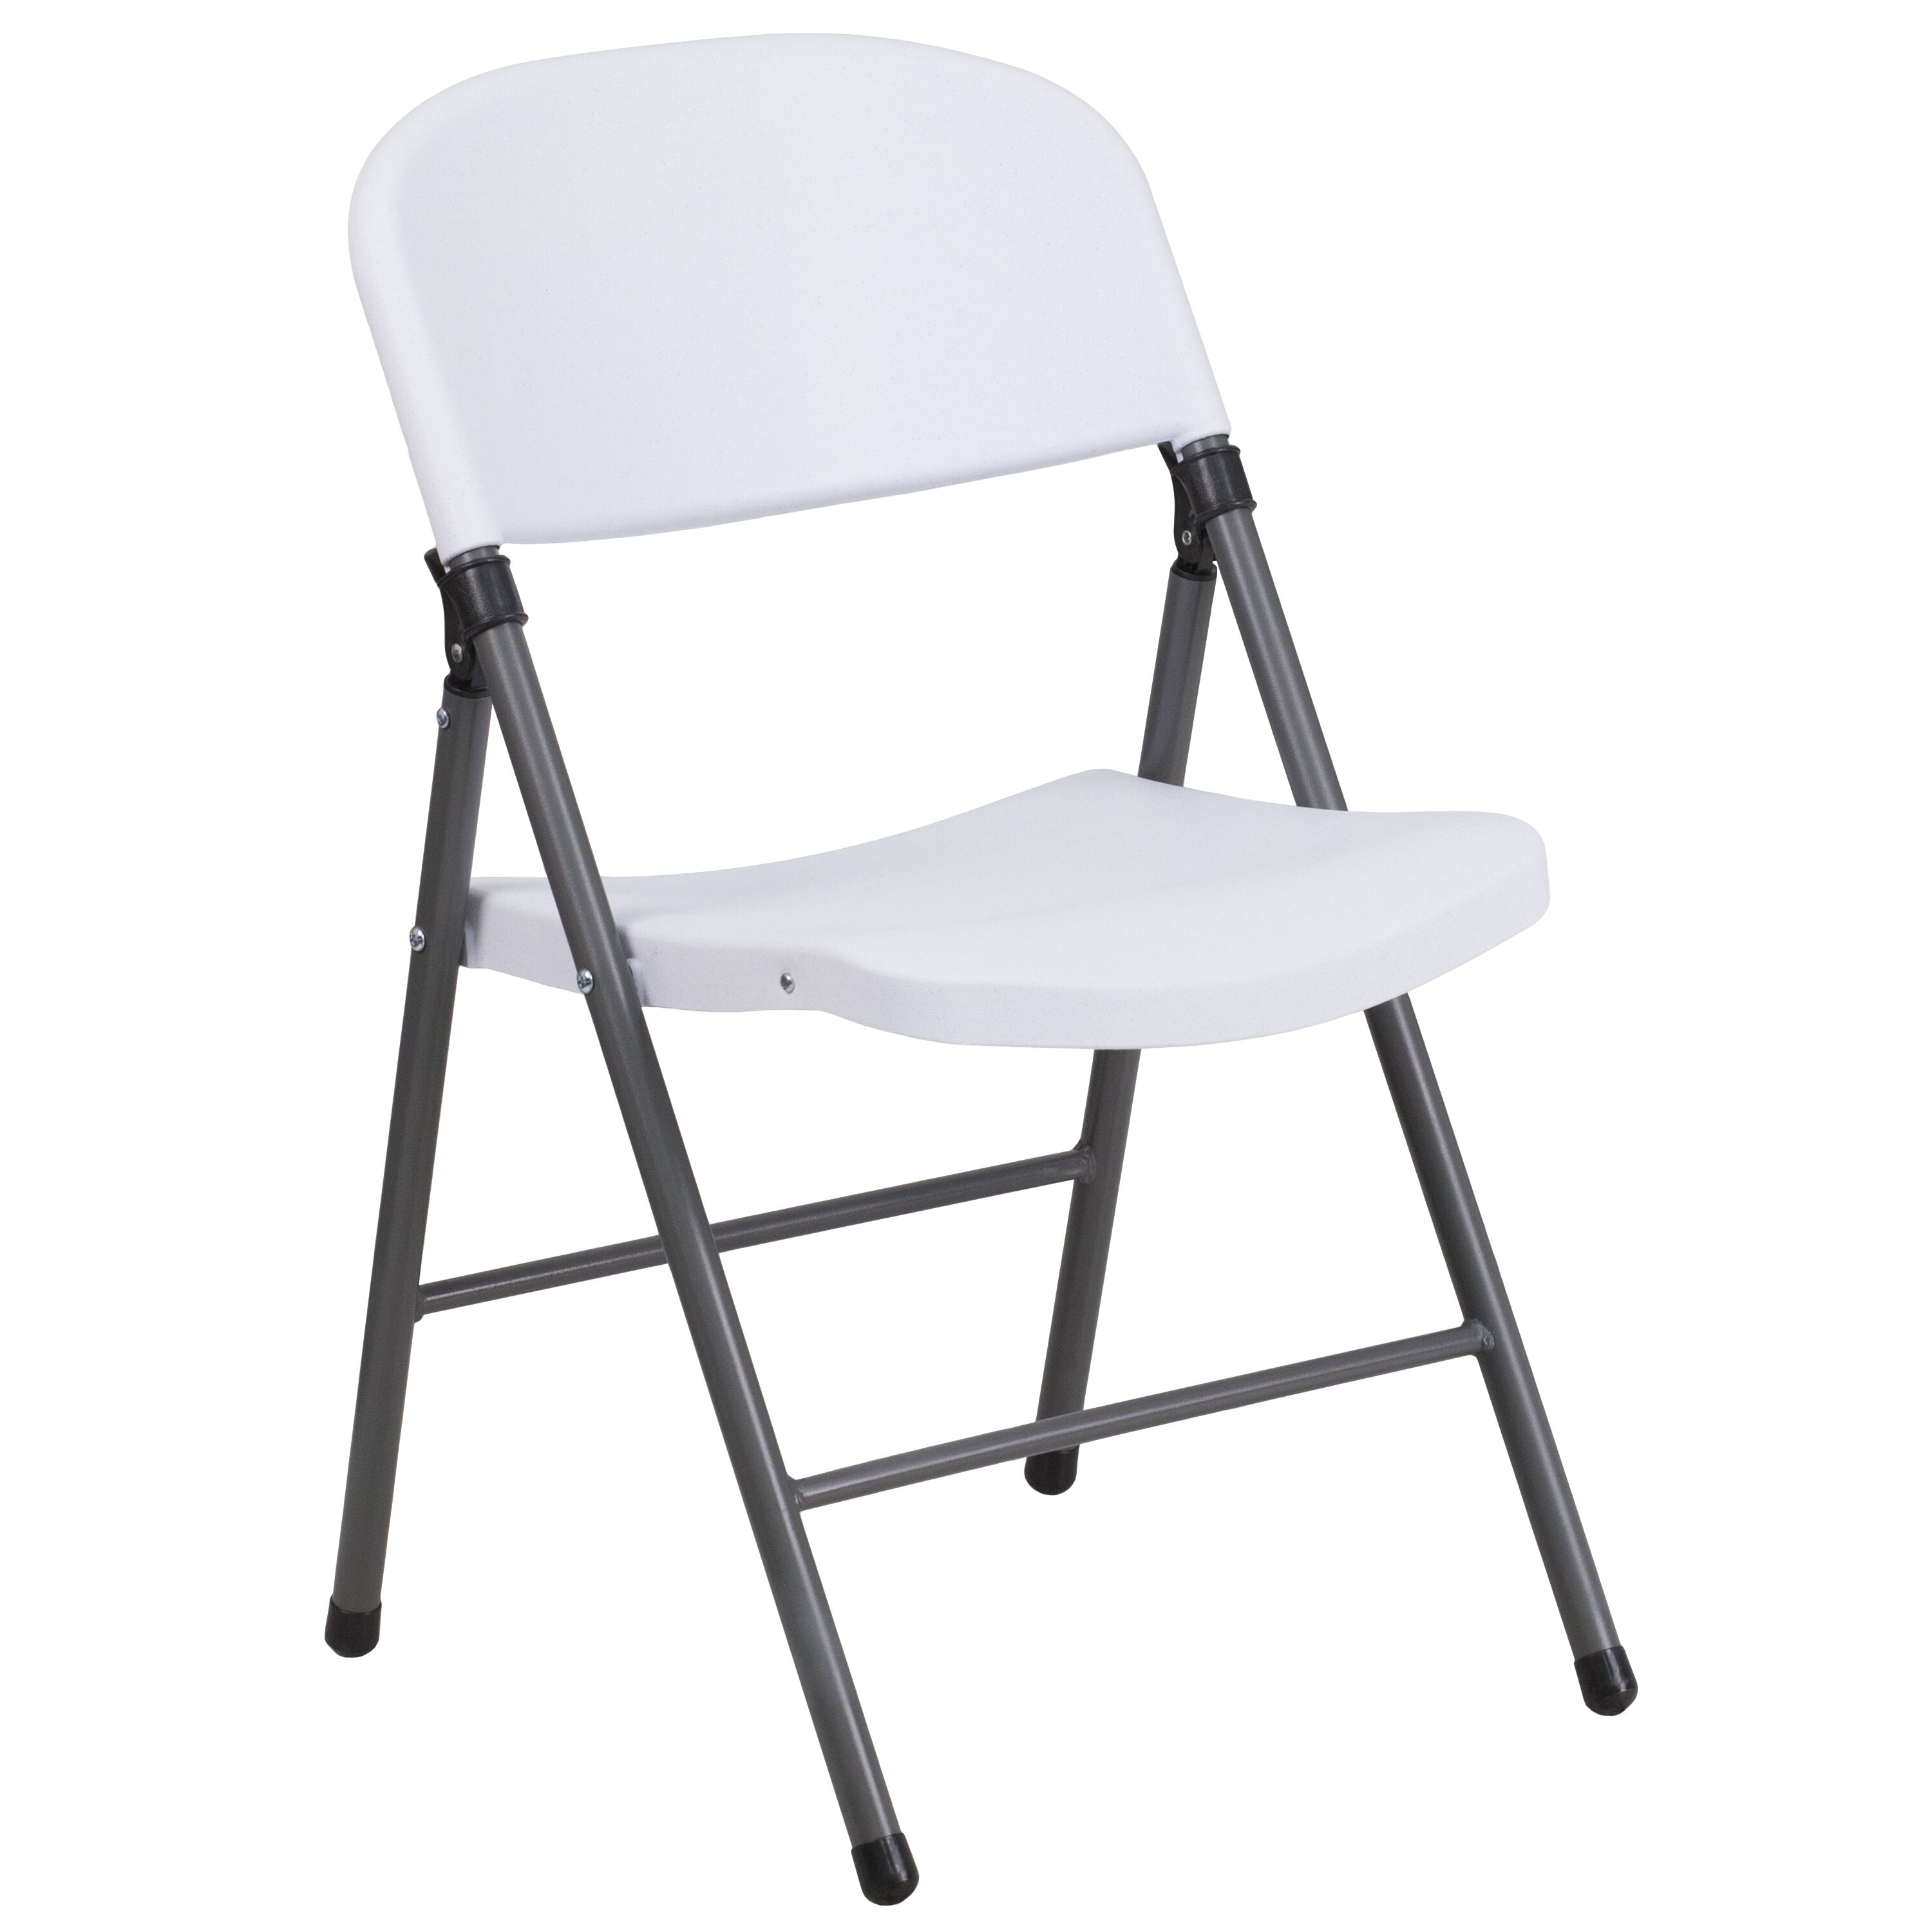 Delicieux Capacity Granite White Plastic Folding Chair With Charcoal Frame